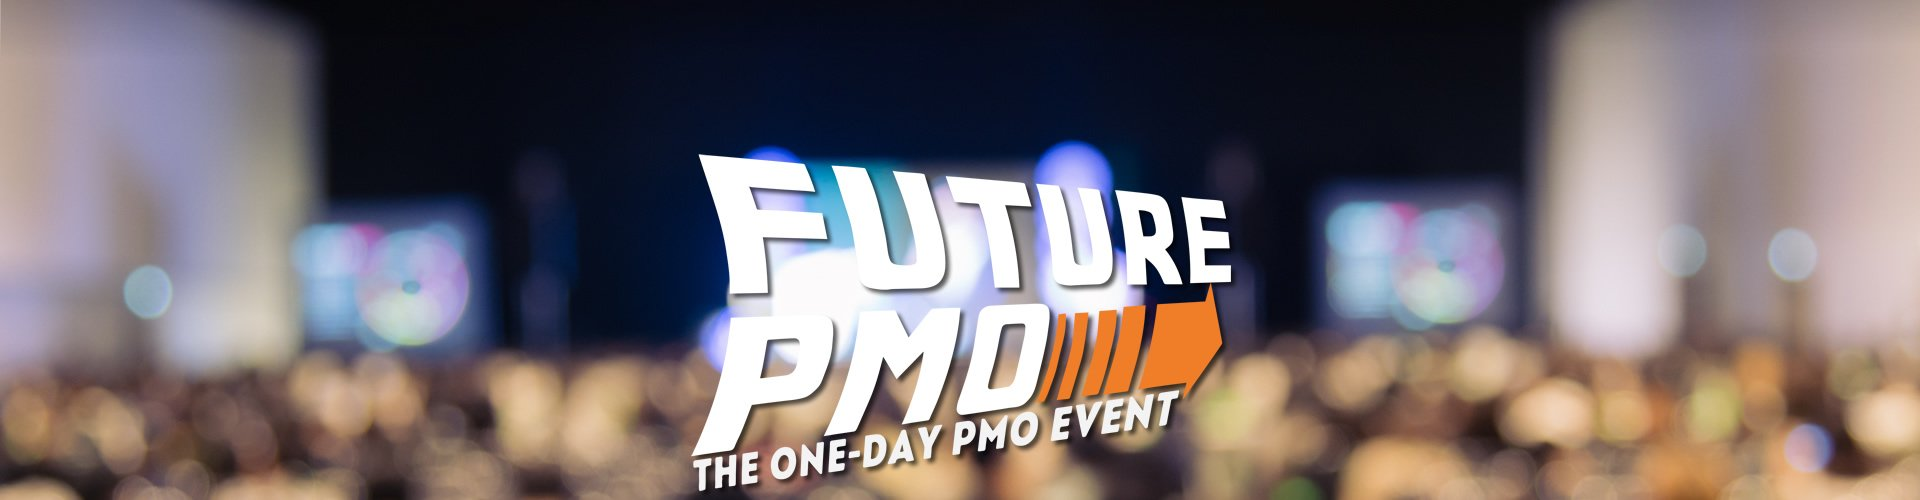 FuturePMO - The One Day PMO Event Conference